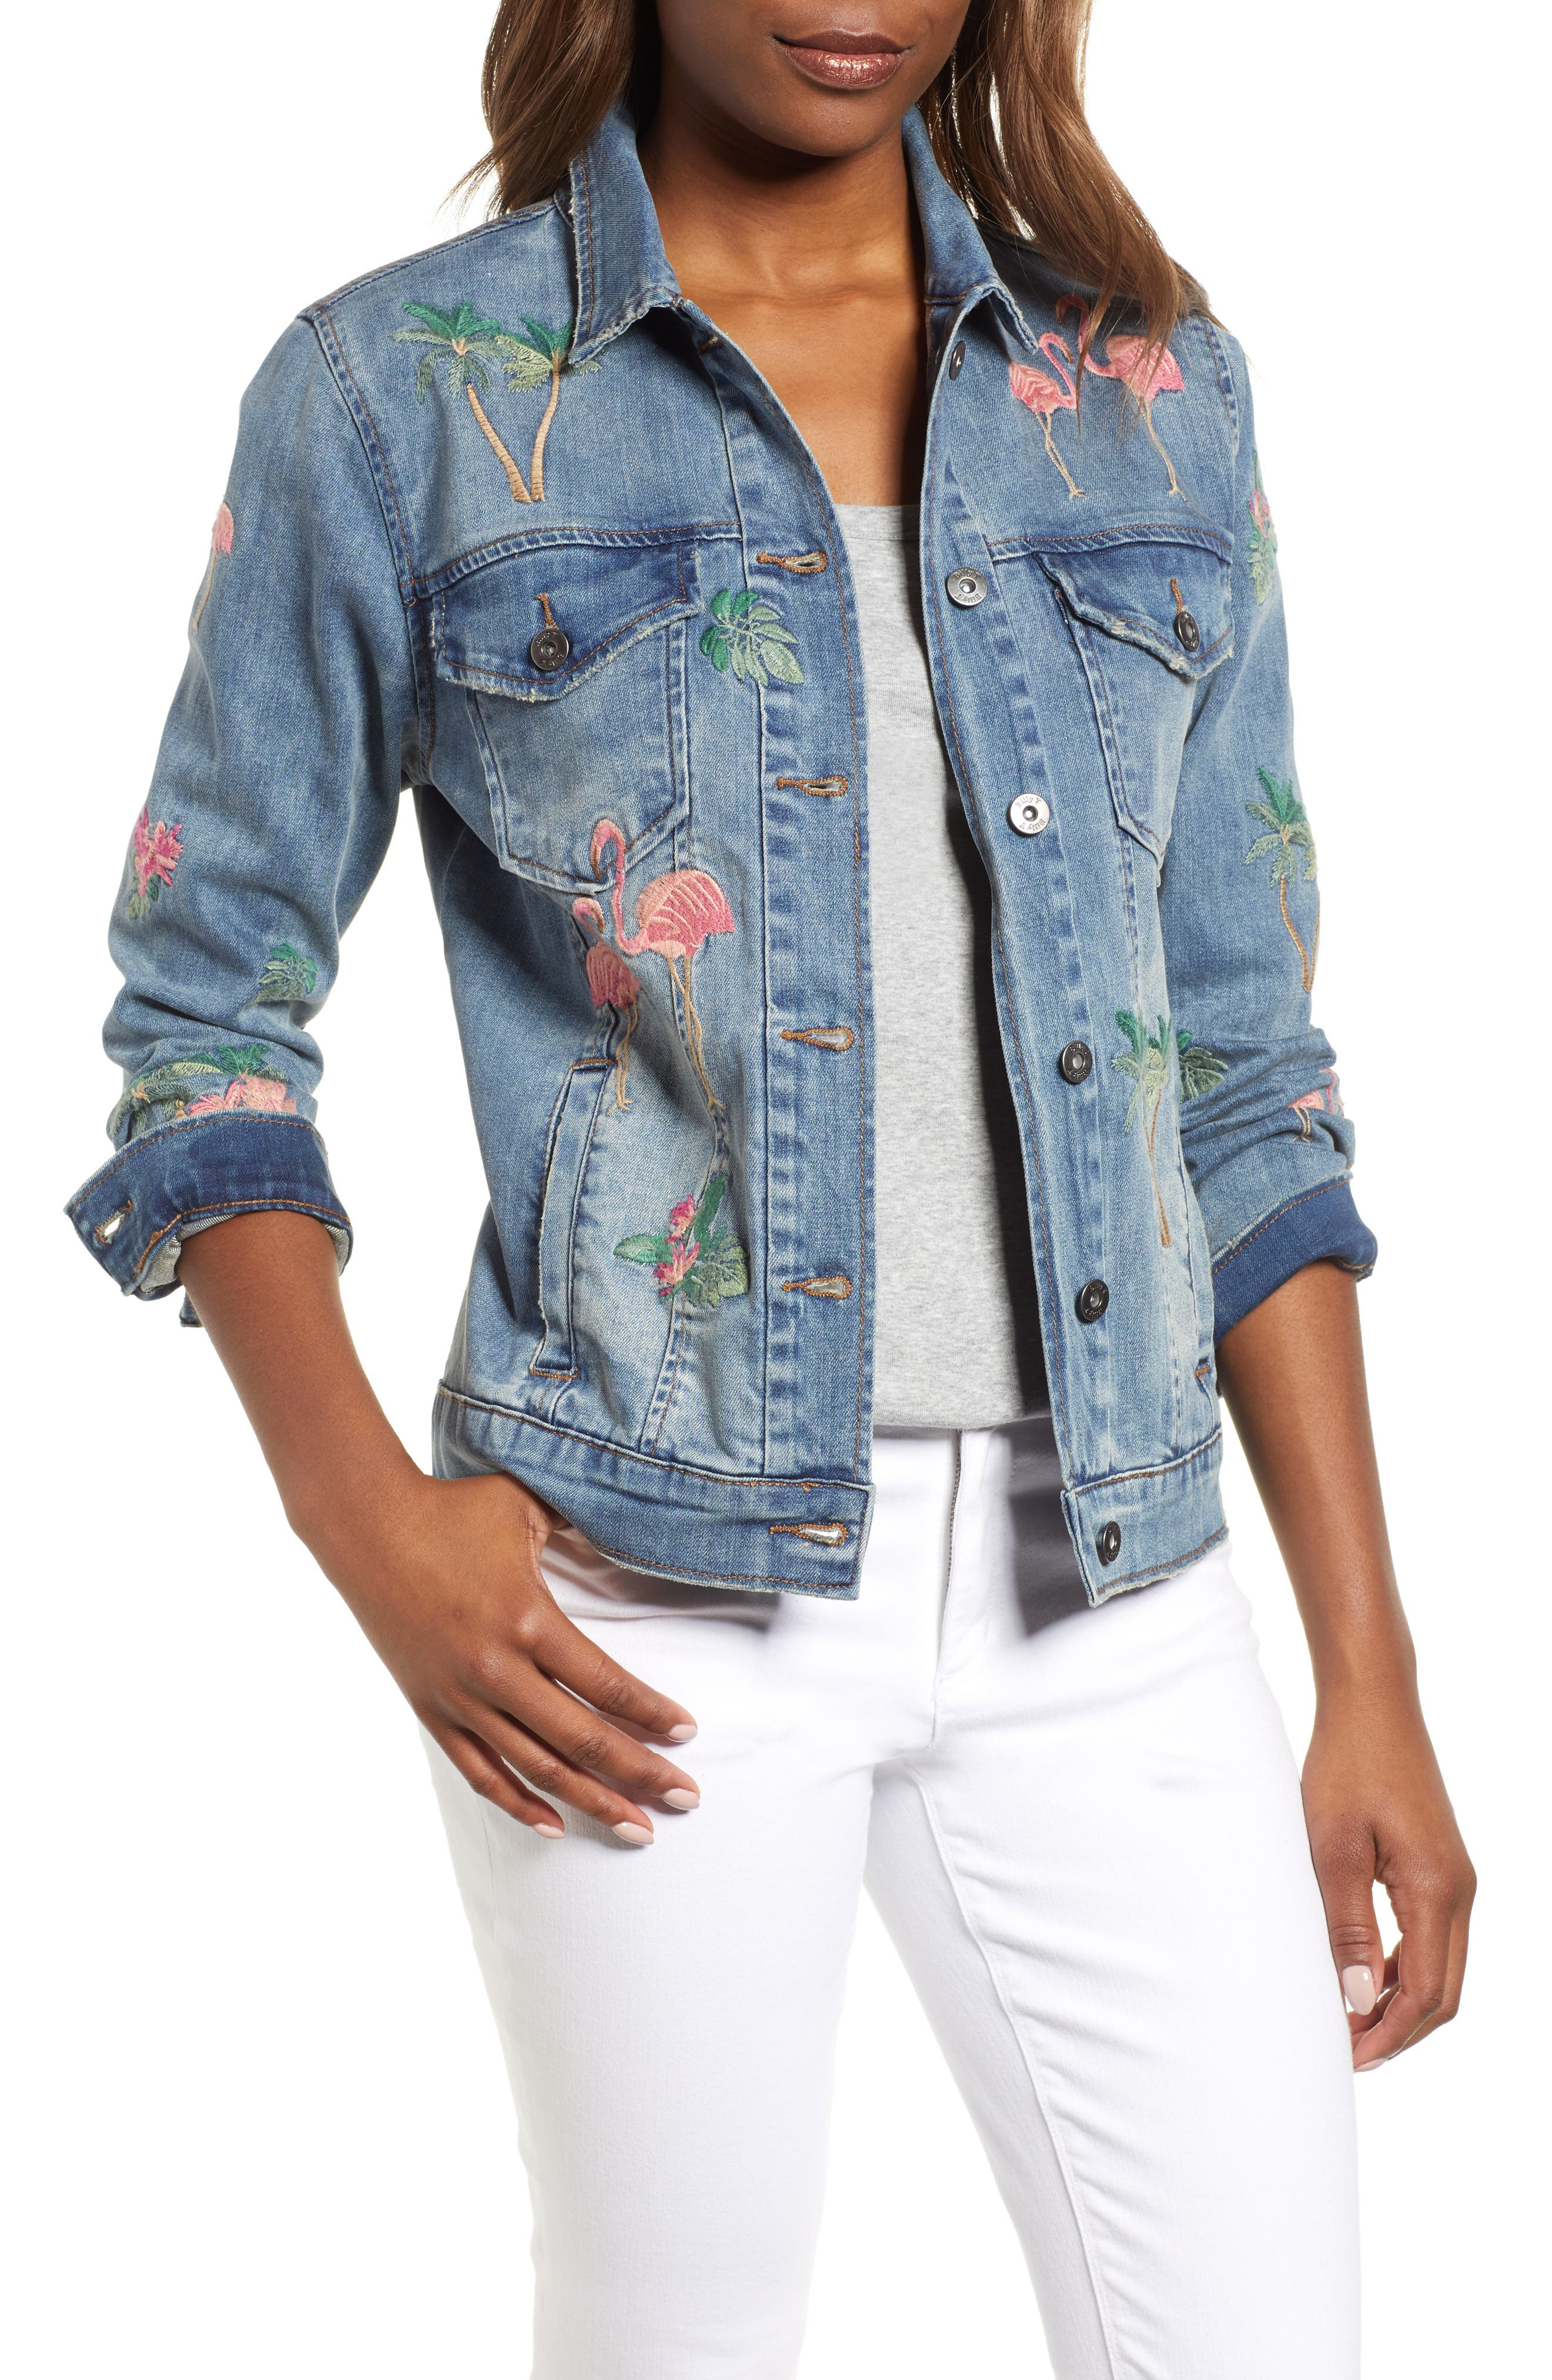 Flamingo Embroidered Denim Jacket,                             Main thumbnail 1, color,                             Blue W/ Embroider